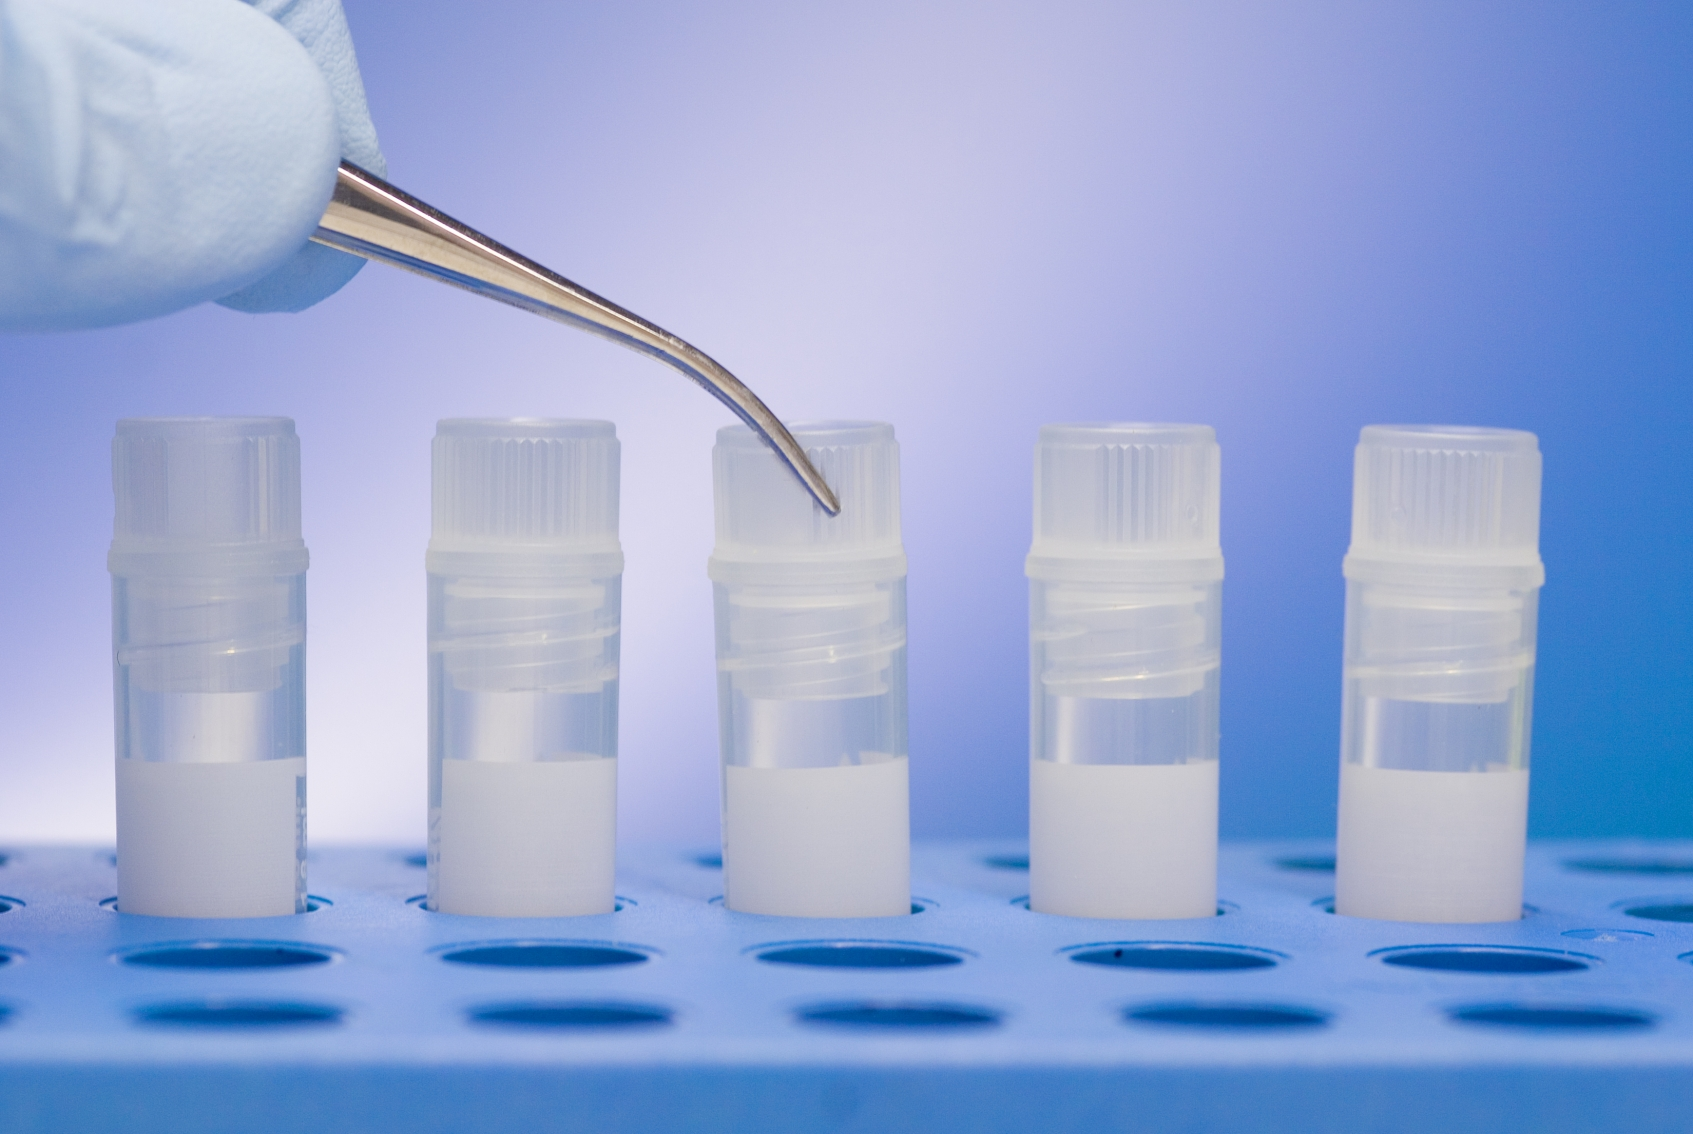 3 Key Trends You Must Know to Profit from Stem Cell Products